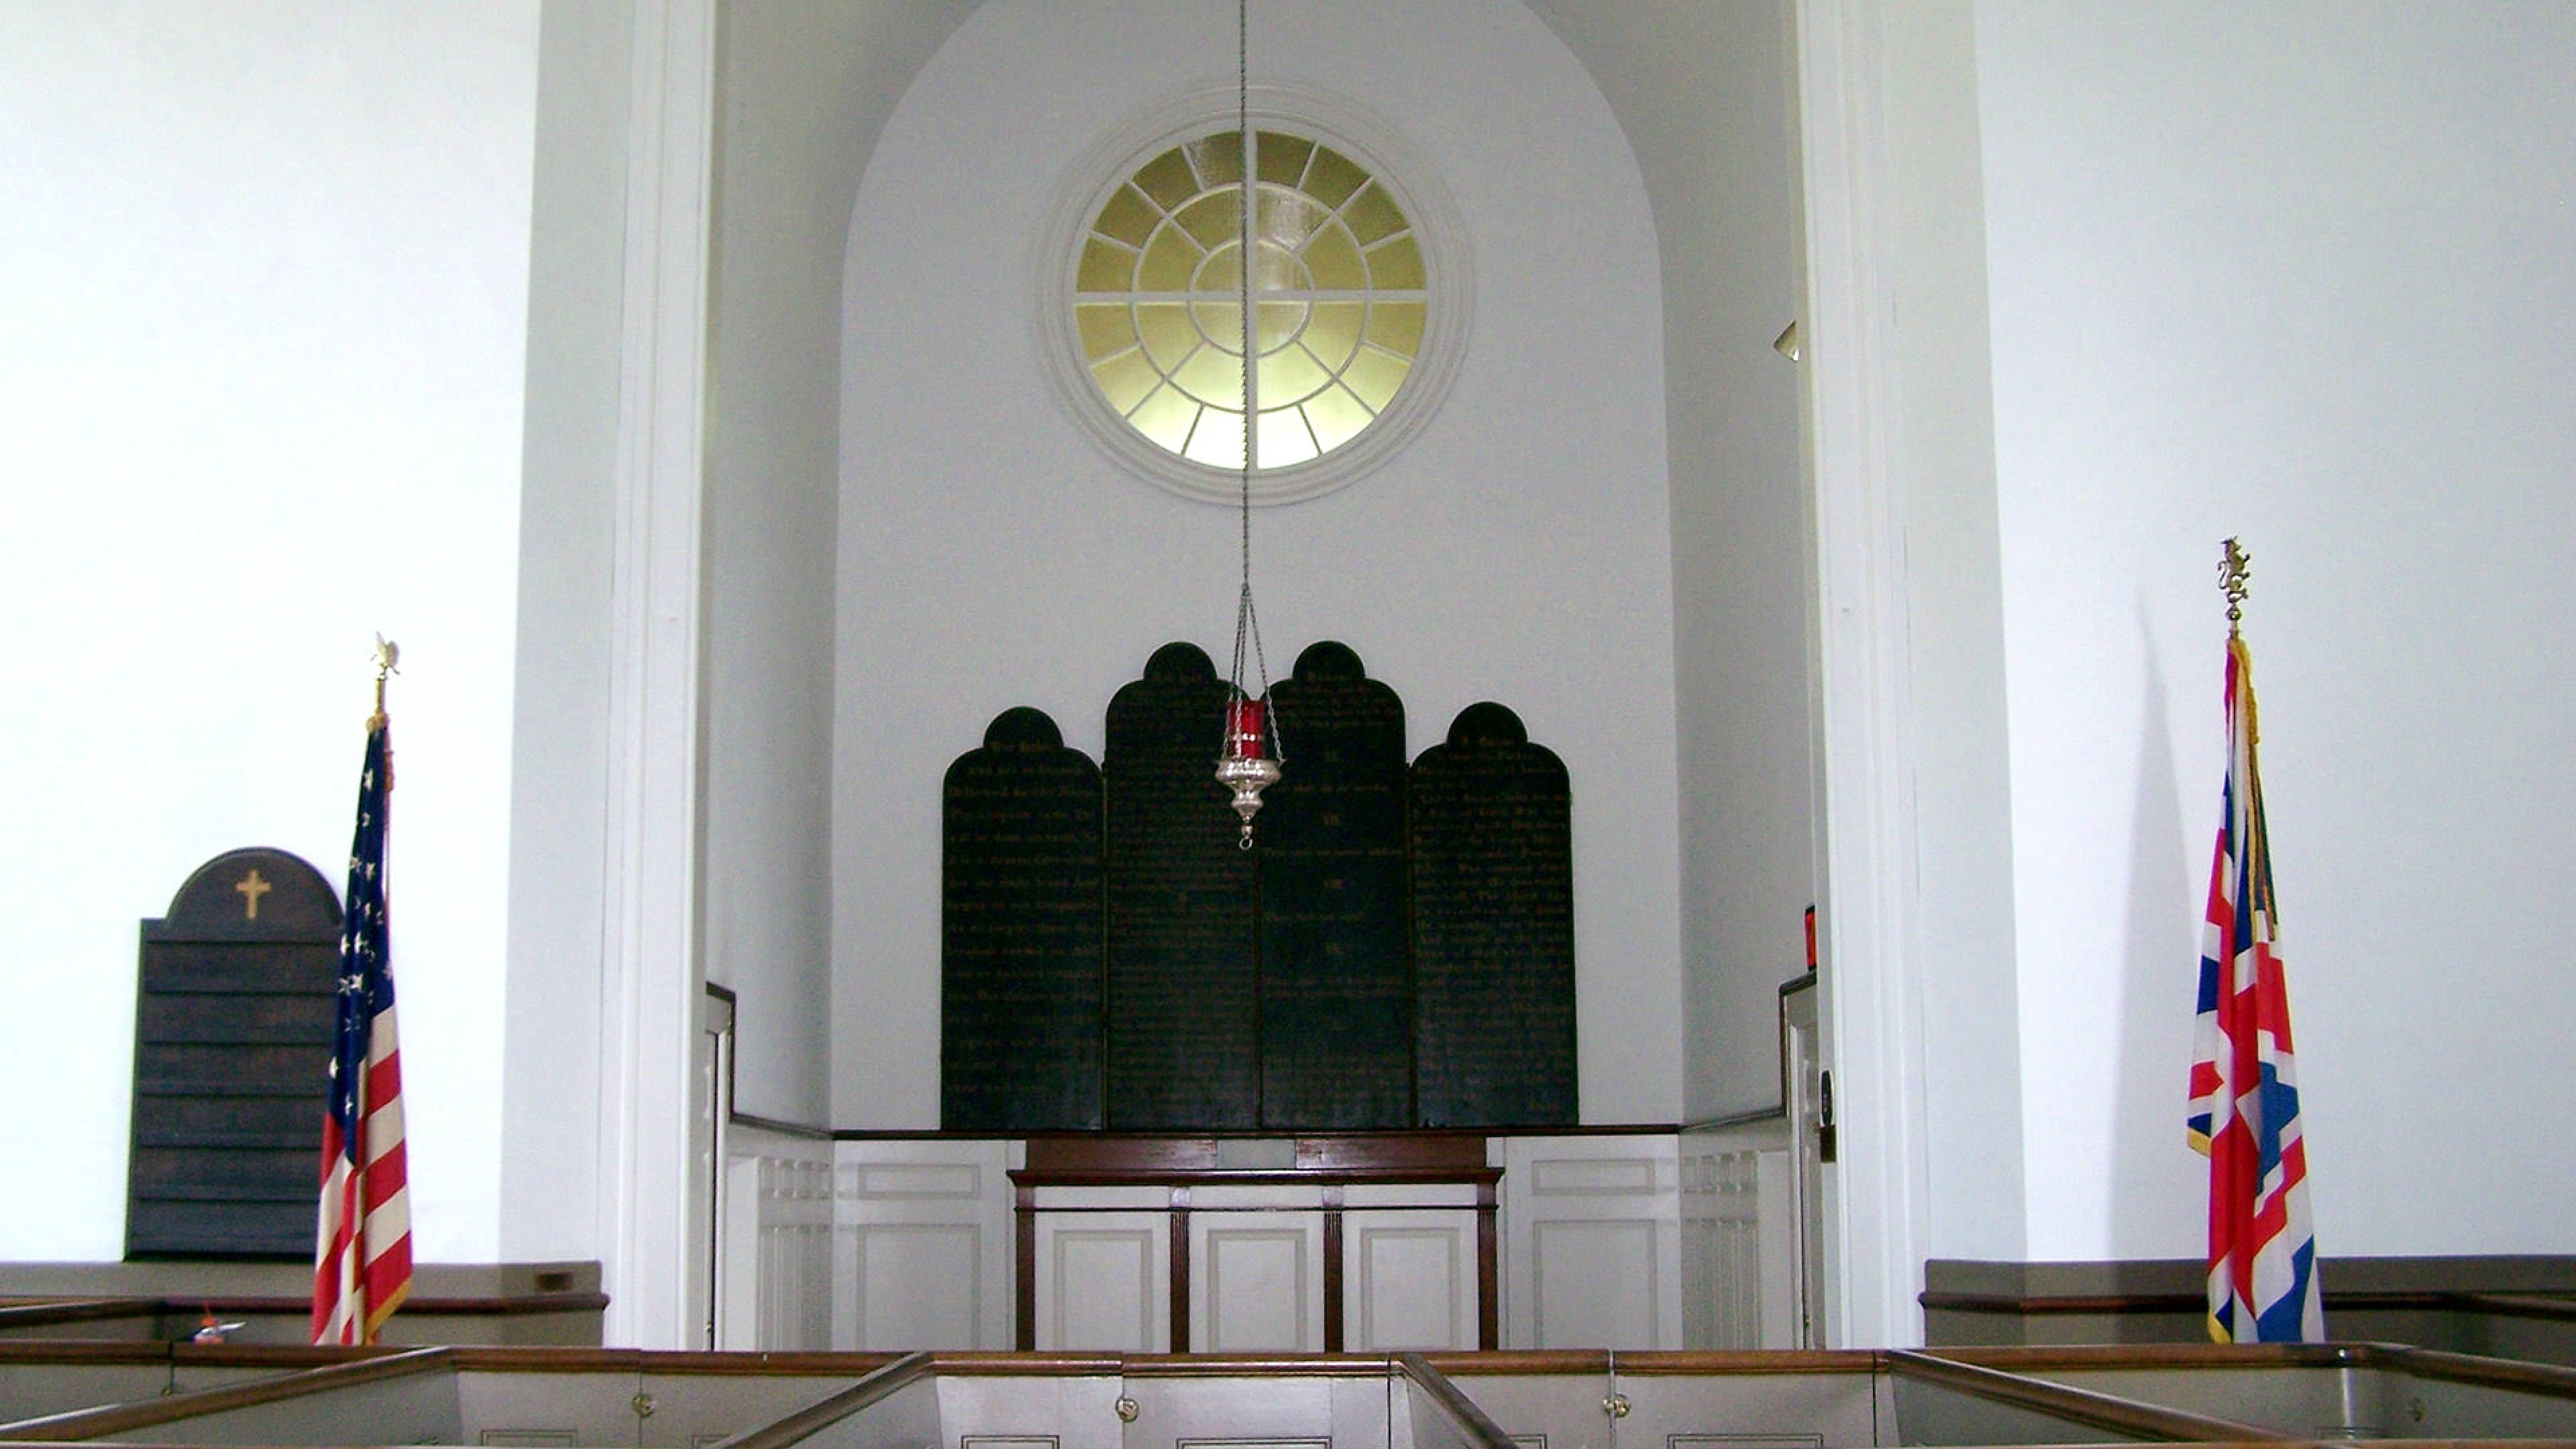 alter of historic church